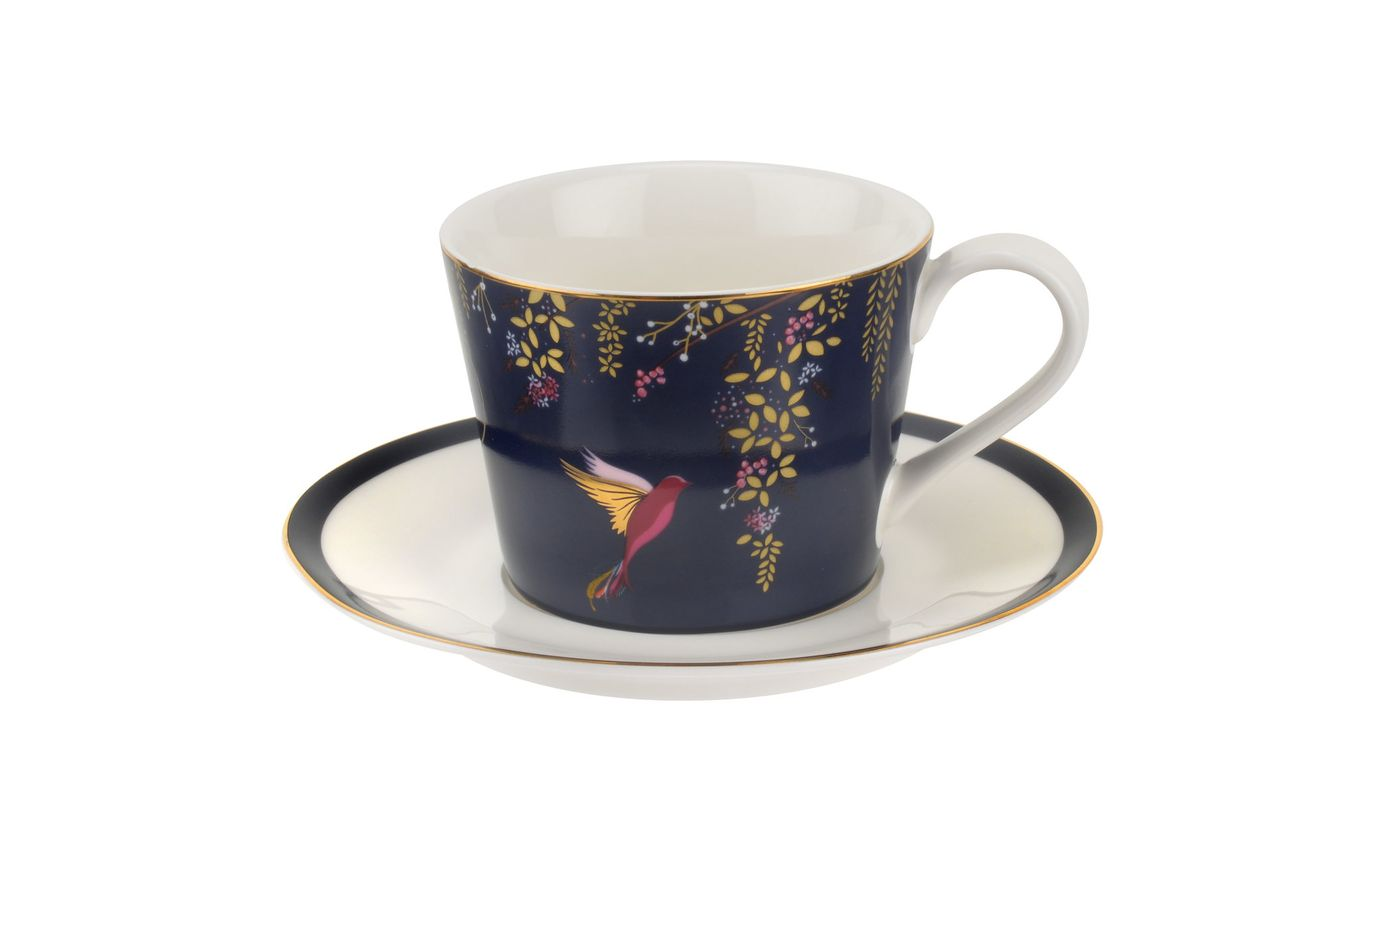 Sara Miller London for Portmeirion Chelsea Collection Teacup & Saucer Navy 0.2l thumb 1